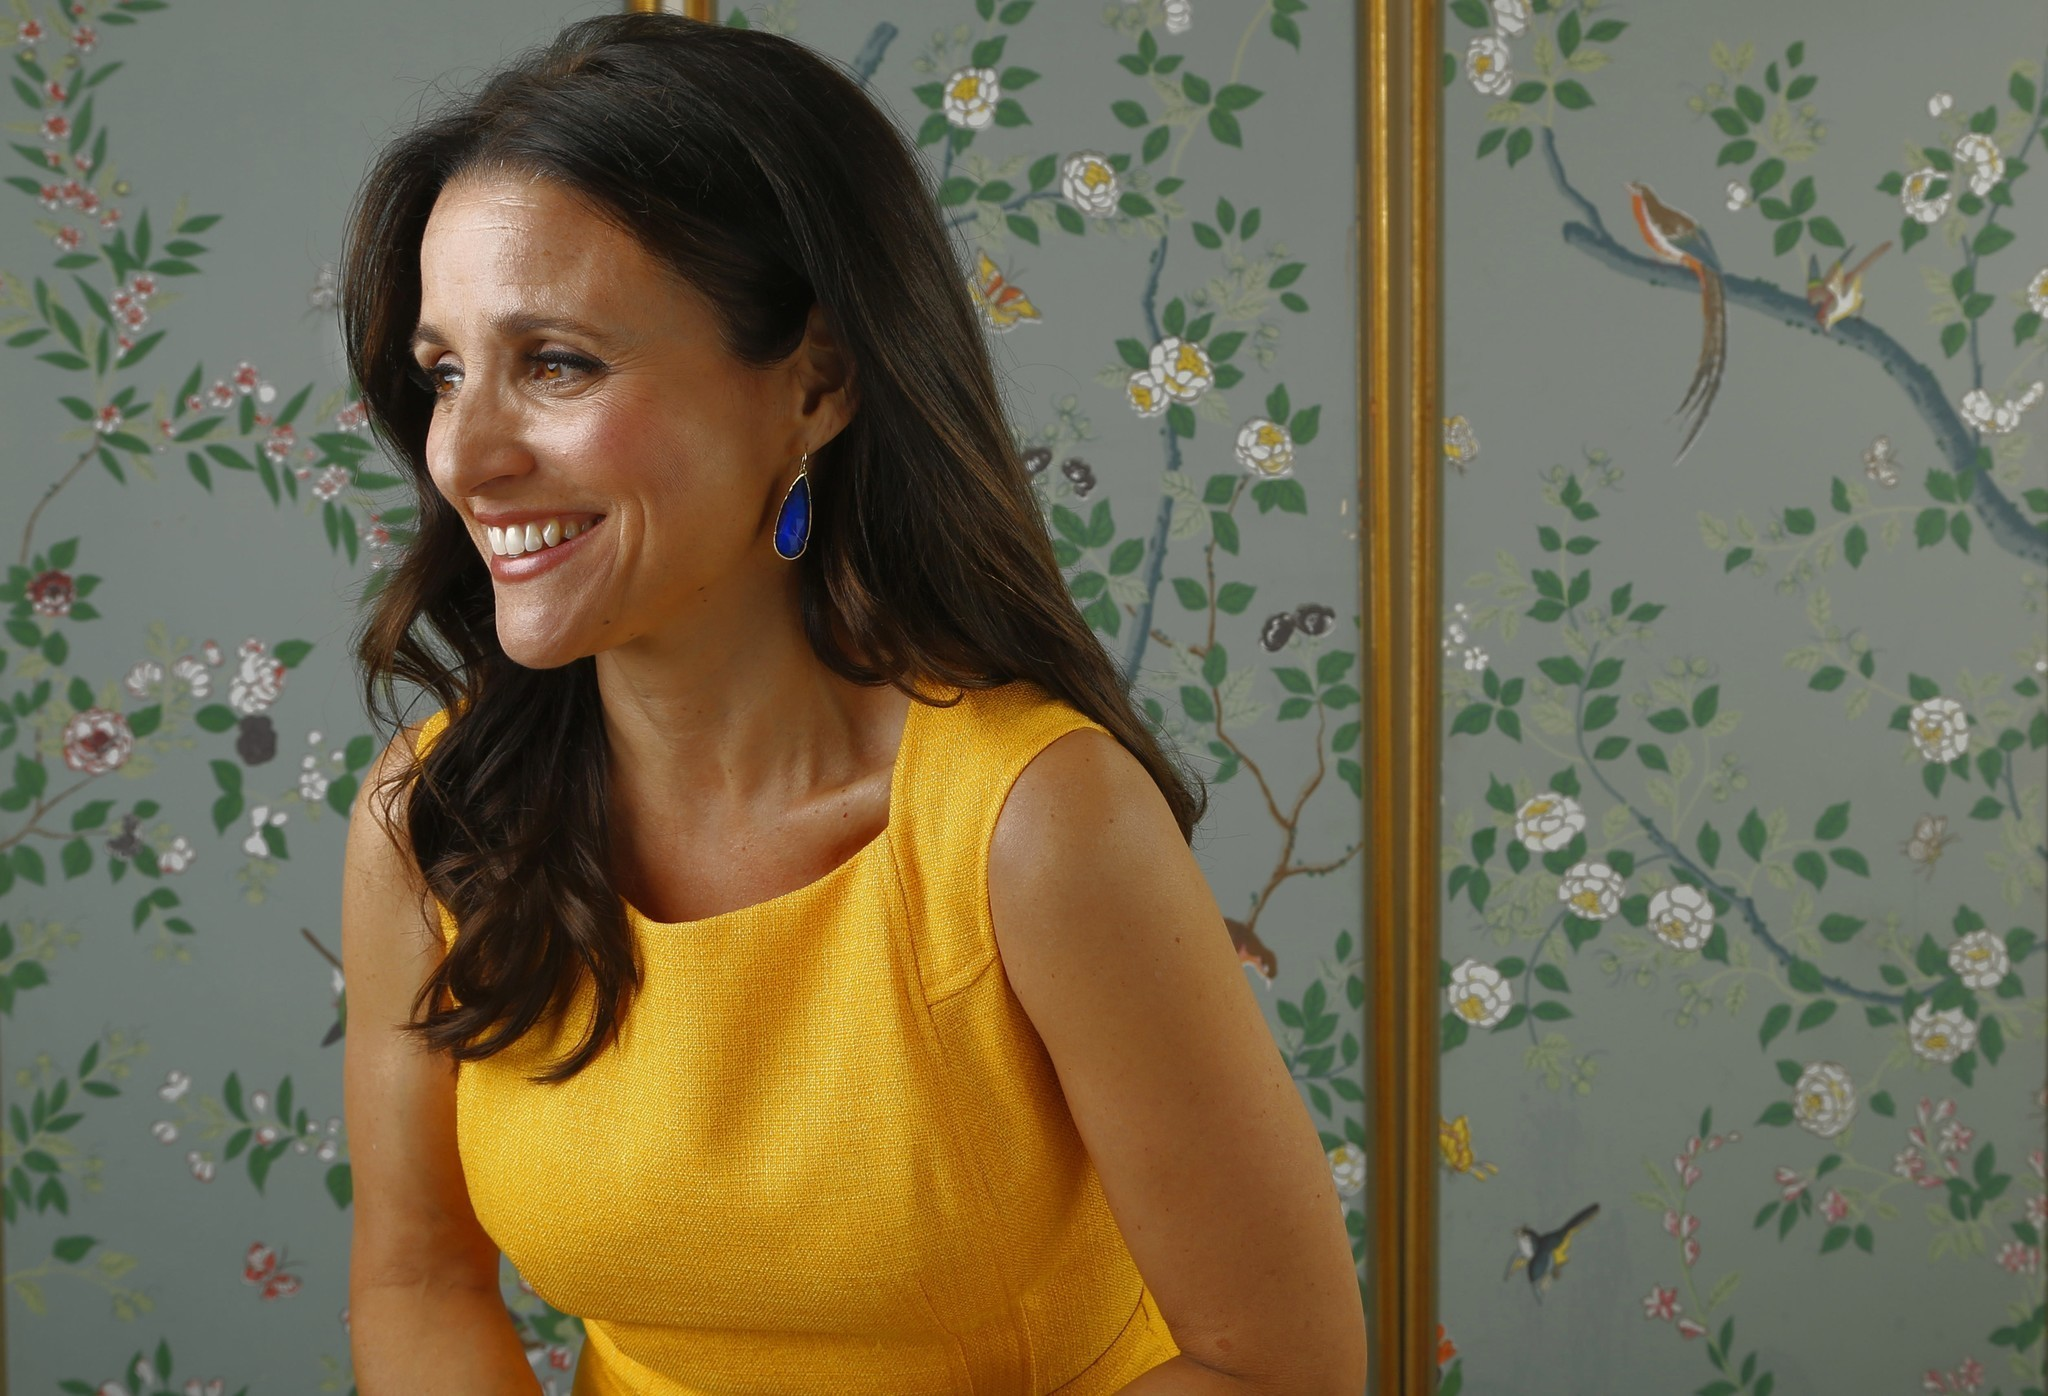 julia louisdreyfus awkwardly leads the way to